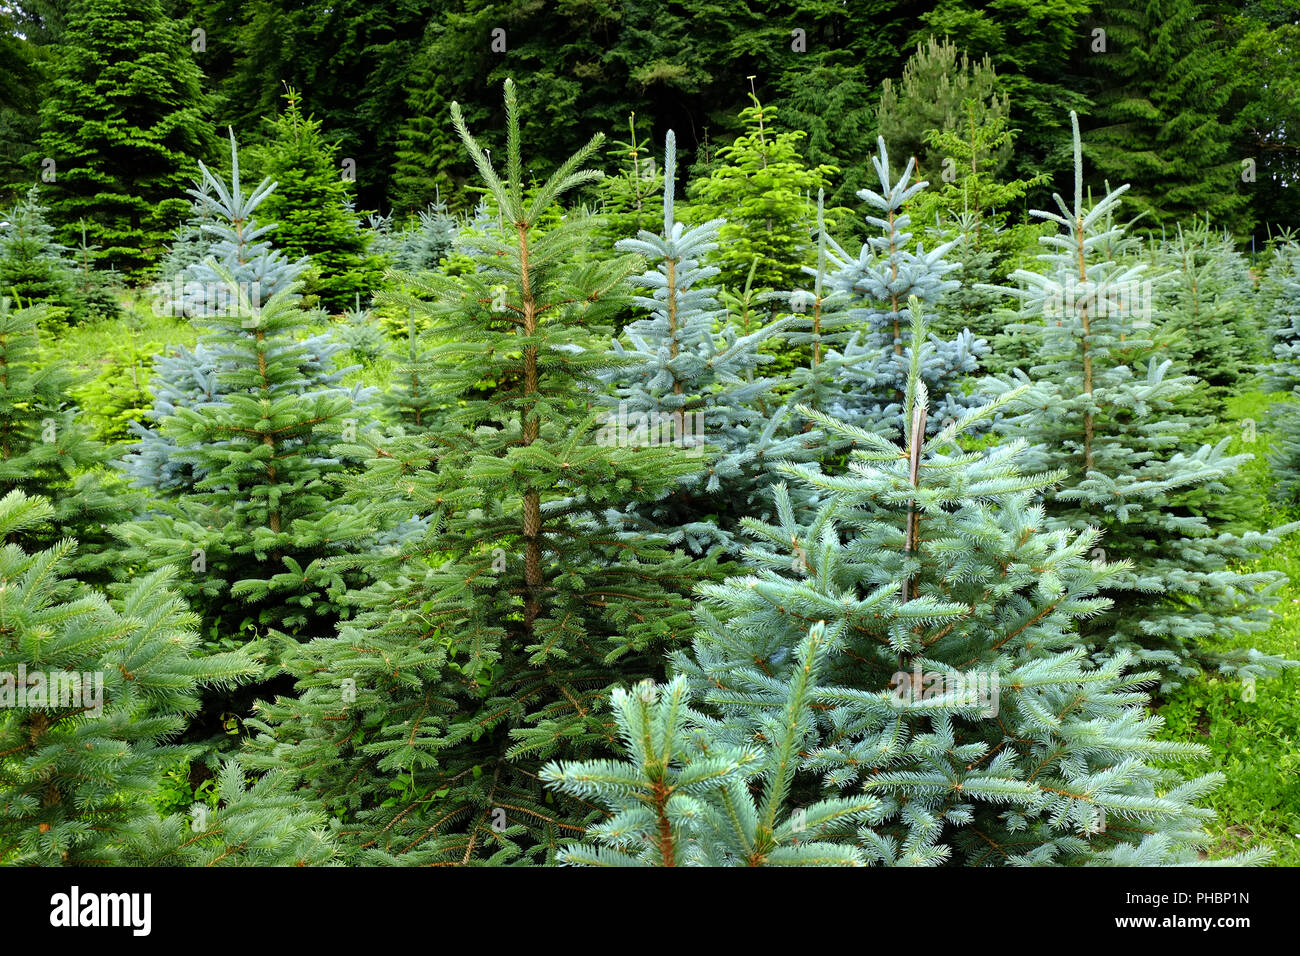 Conifers - Stock Image